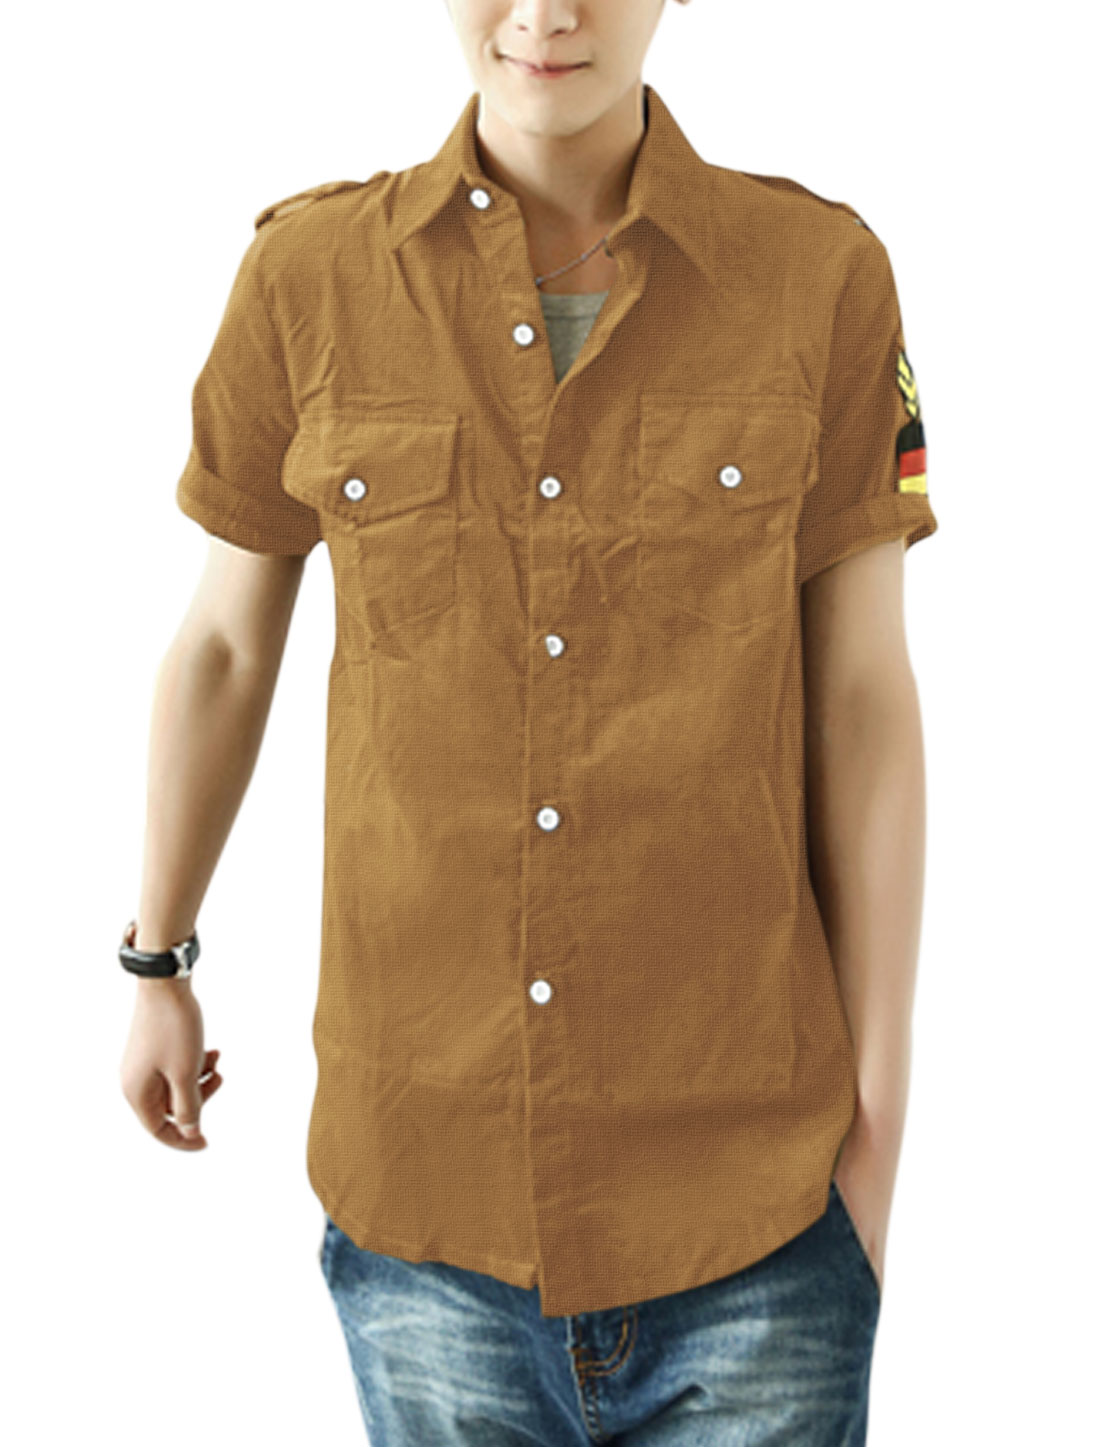 Men Point Collar Button Closure Epaulette Decor Shirt Camel M